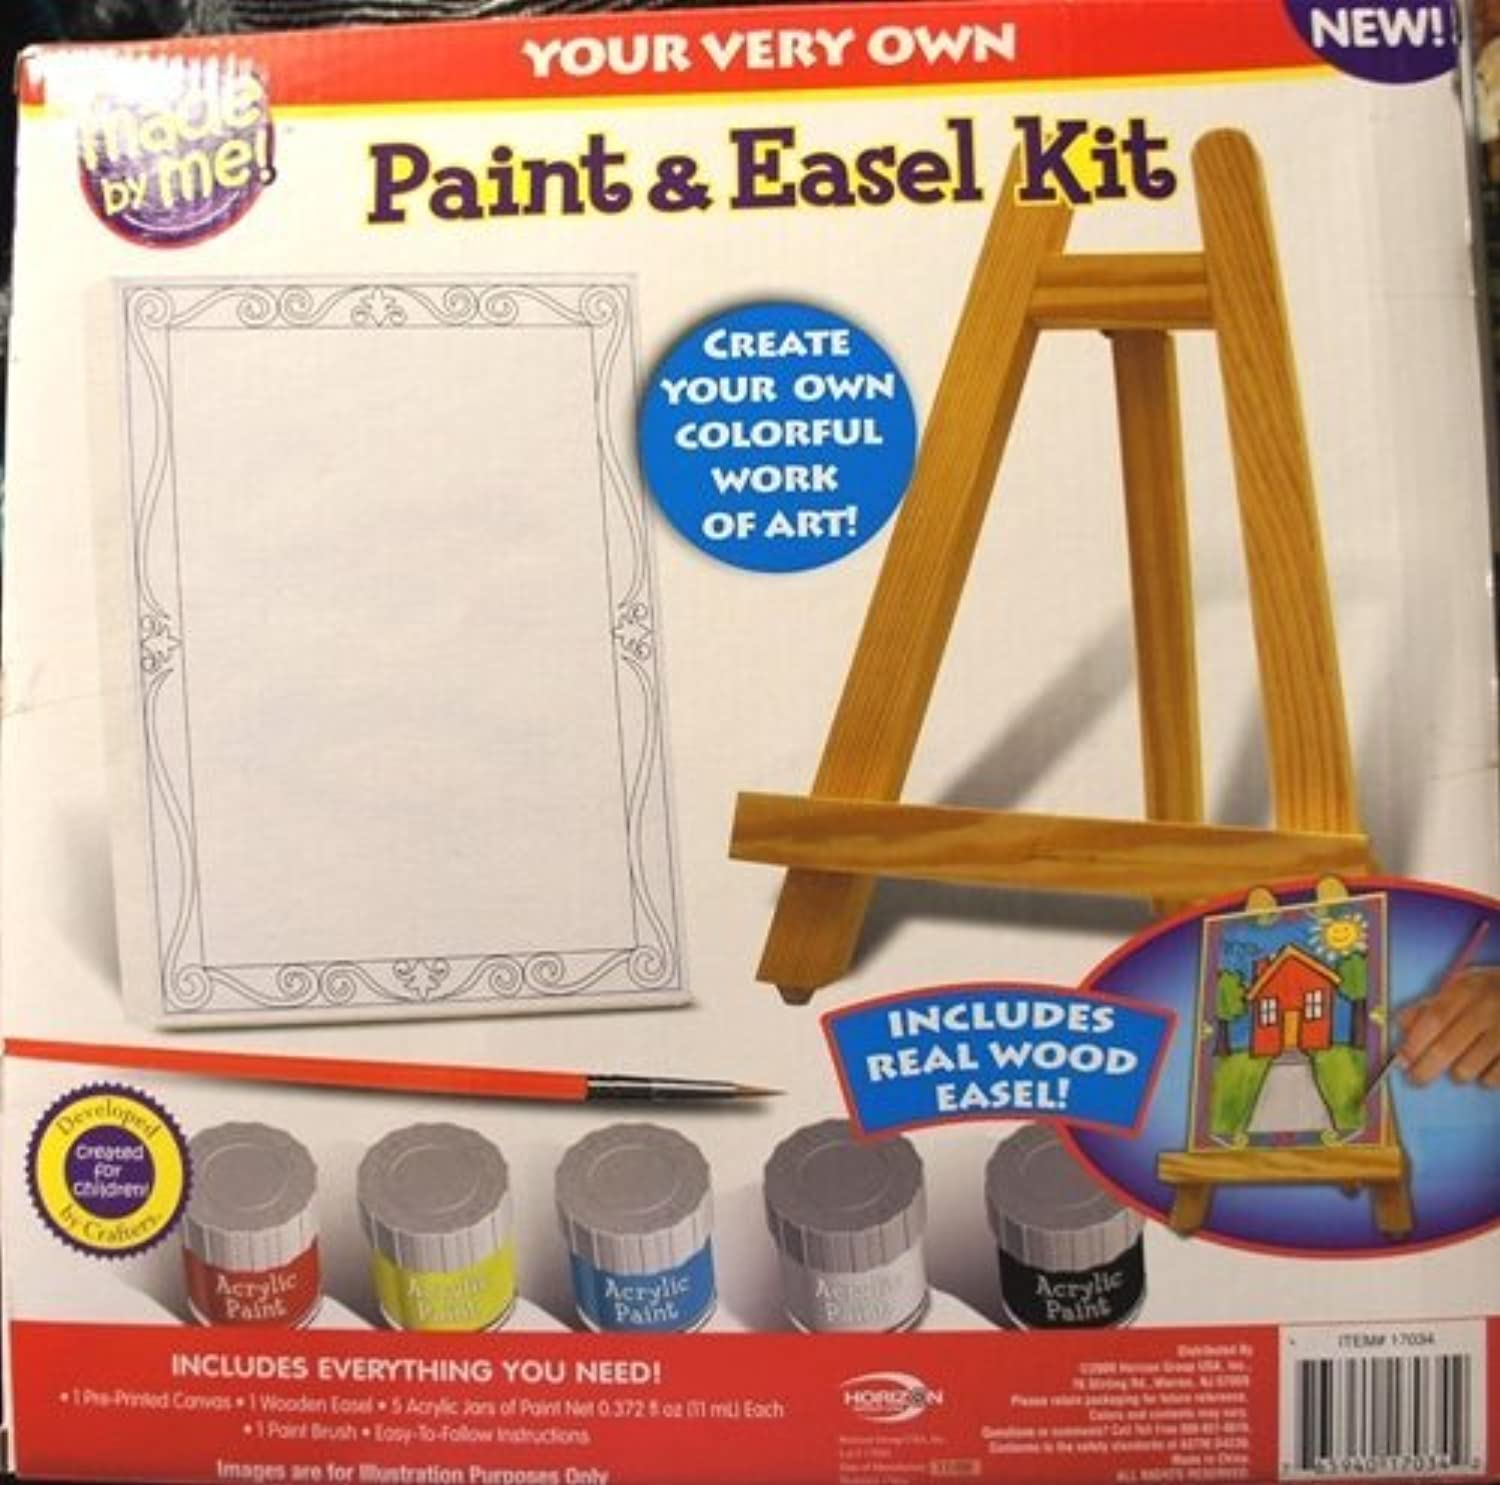 Your Very Own Paint & Easel Kit